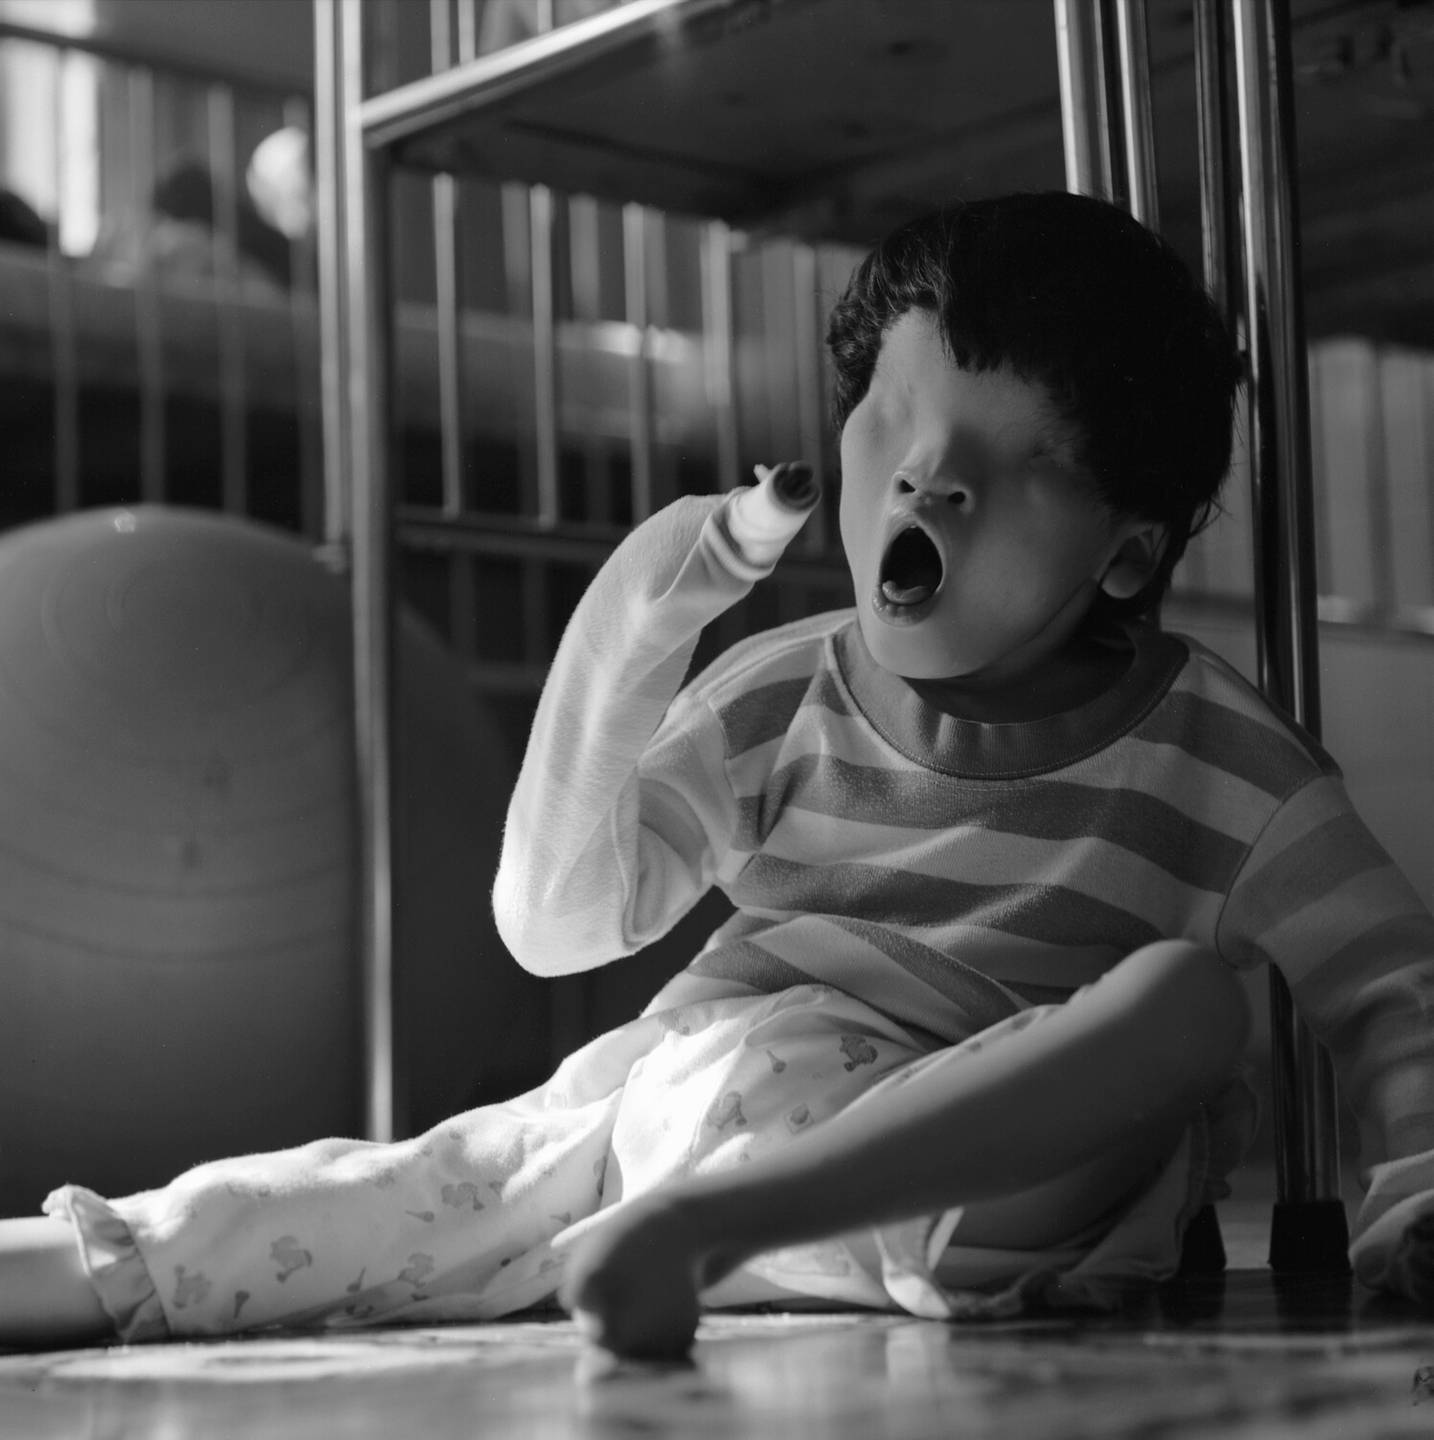 An Asian child without eyes, mouth agape, seated on the floor next to a crib.